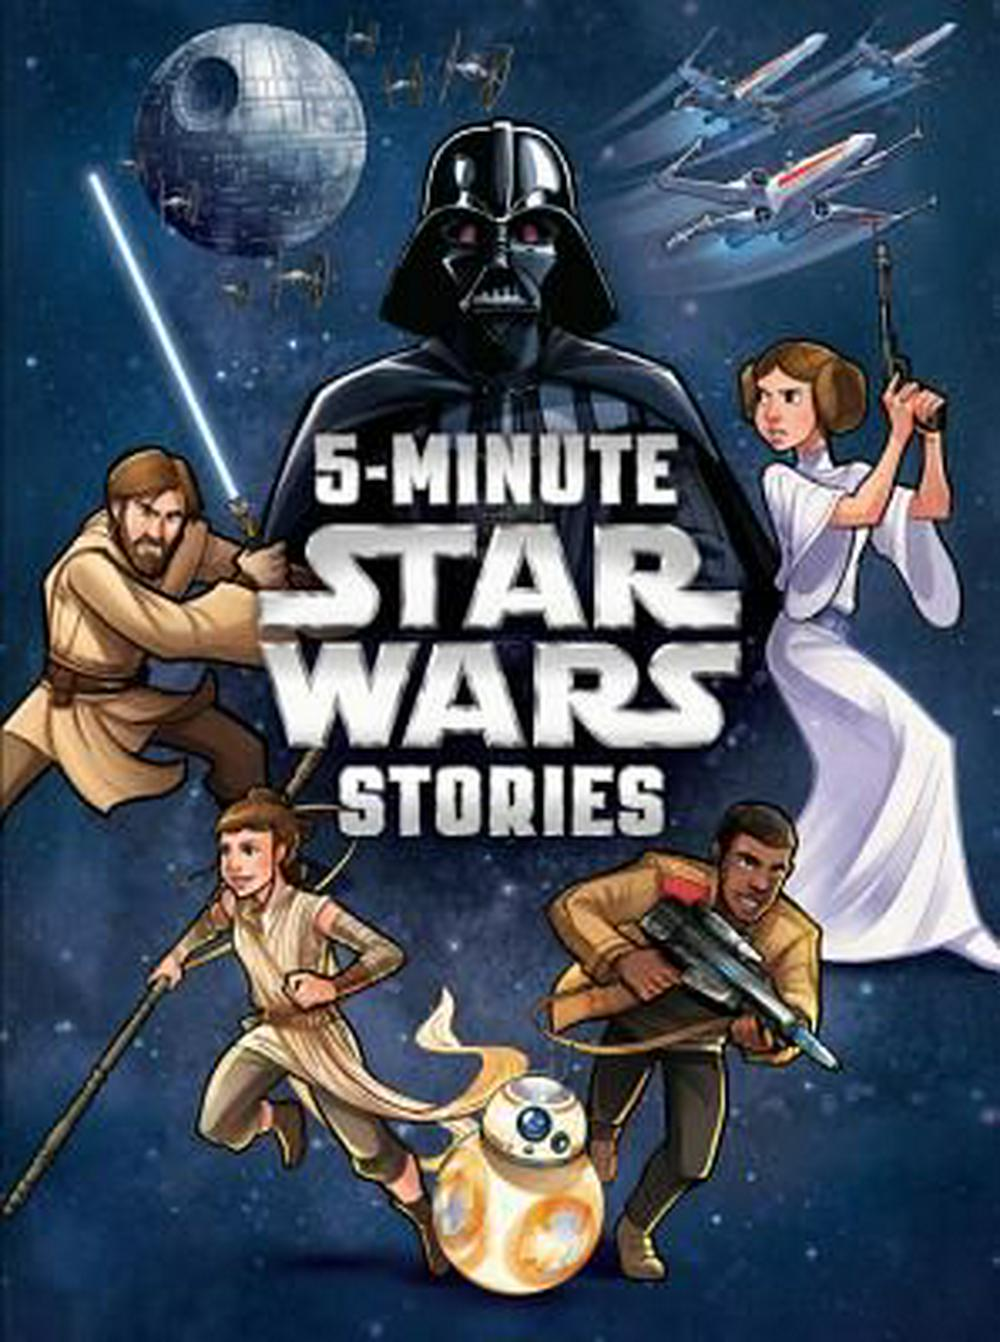 Cover Art for Star Wars - 5-Minute Star Wars Stories, ISBN: 9781484728208